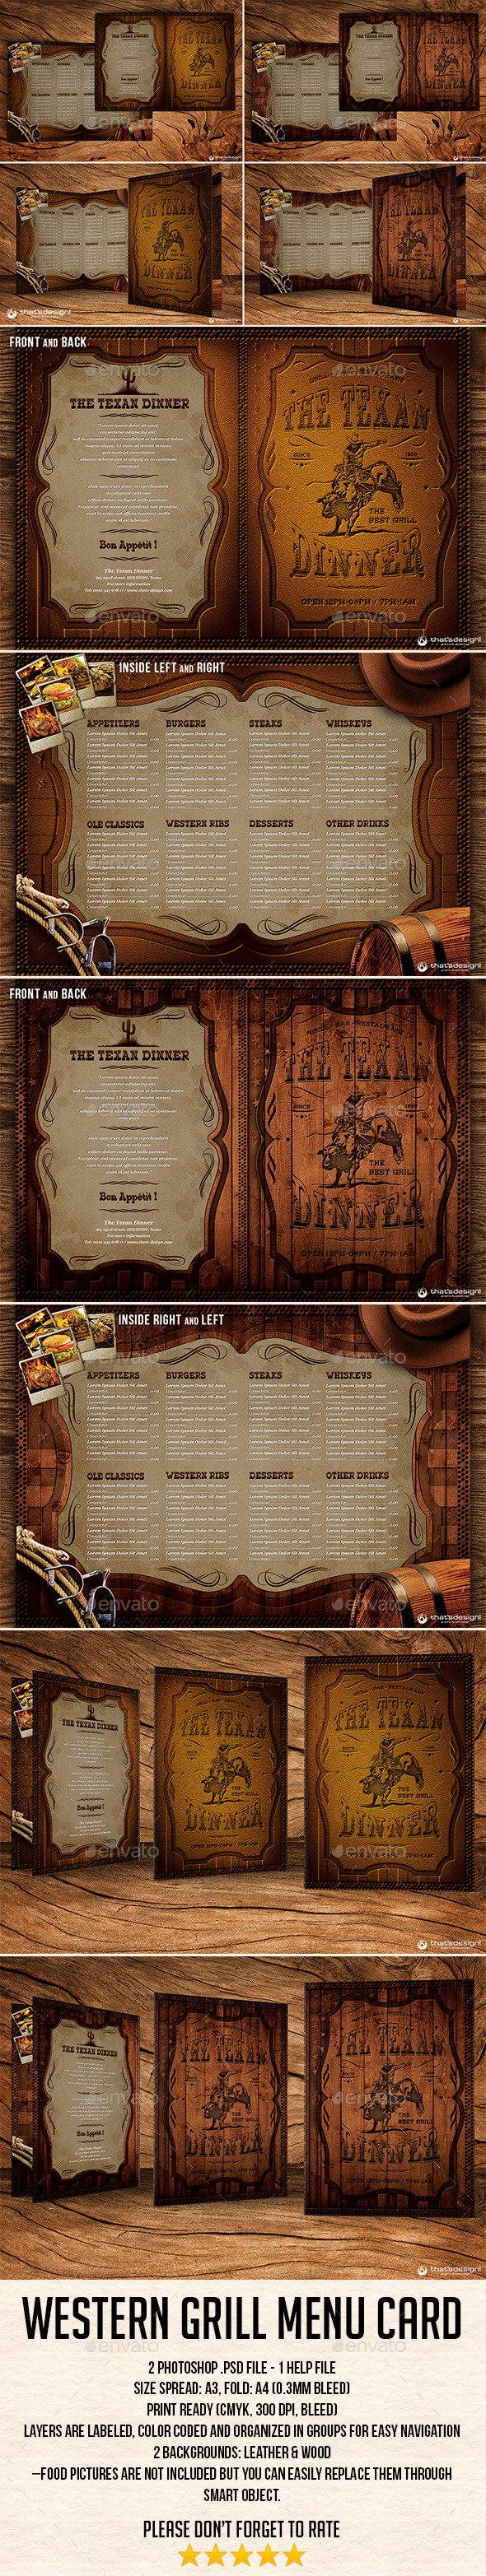 Western Grill Restaurant Menu Card Template - Restaurant Flyers